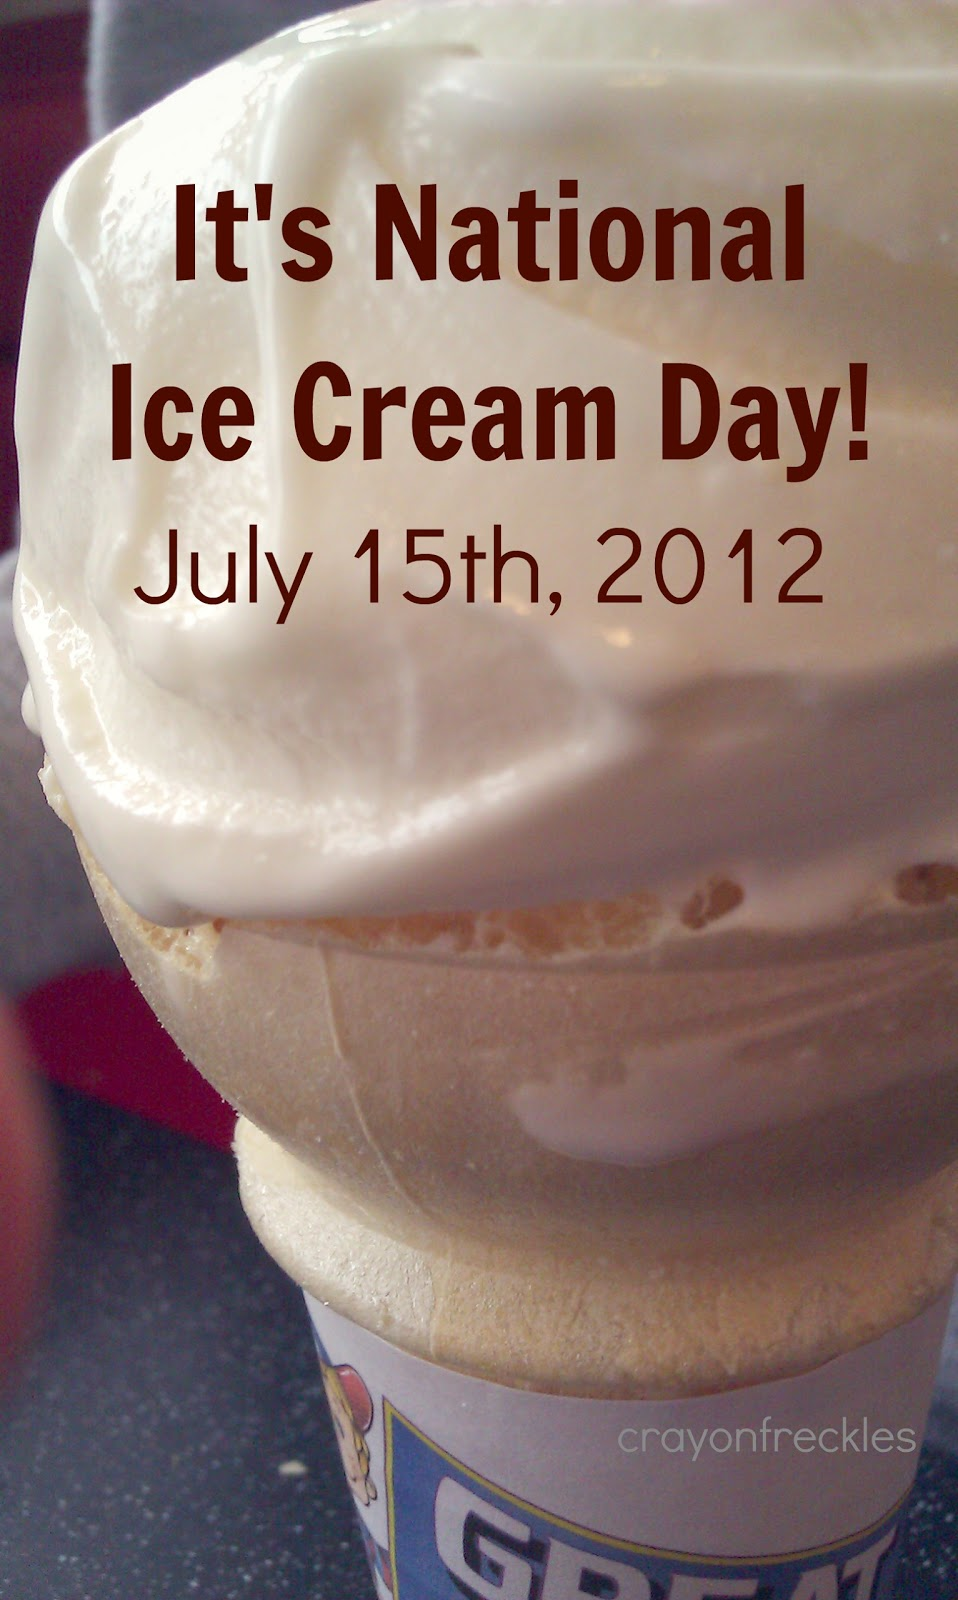 Crayon Freckles: it's National Ice Cream Day